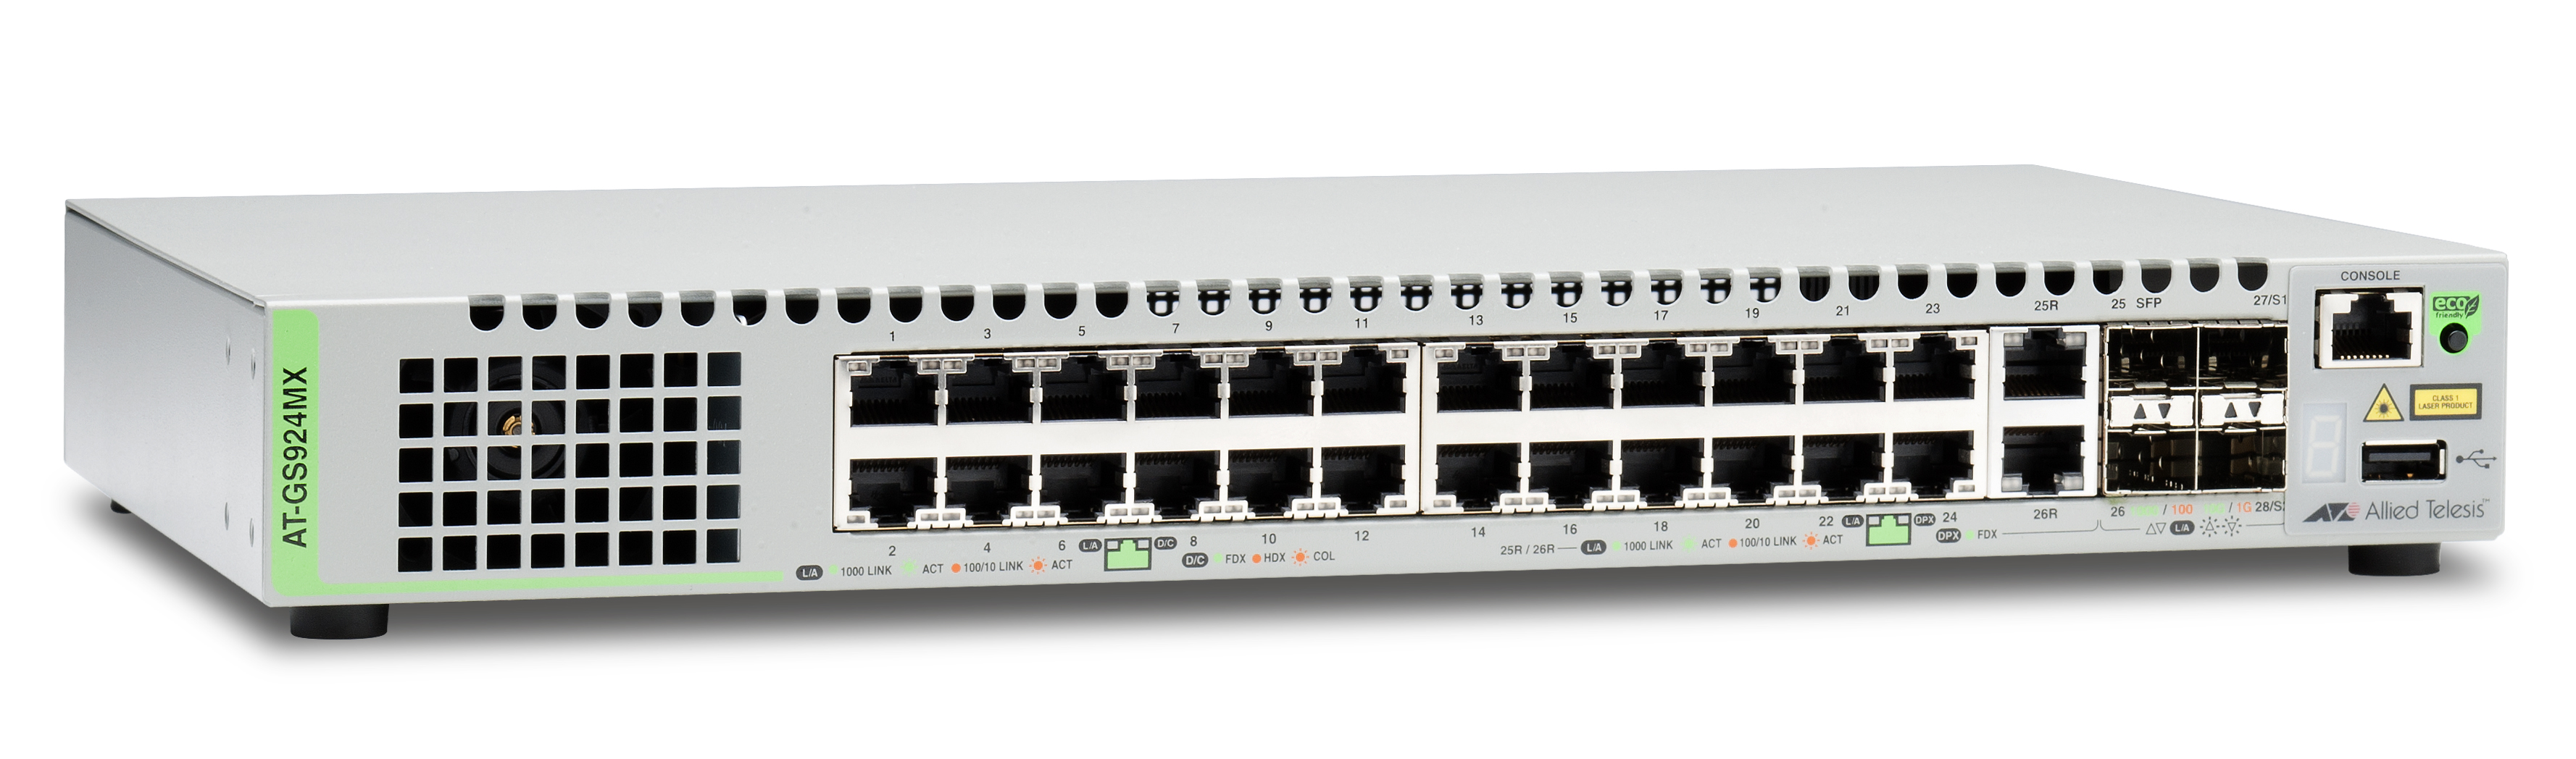 Allied Telesis CentreCOM AT-GS924MX-50 1Gb switch